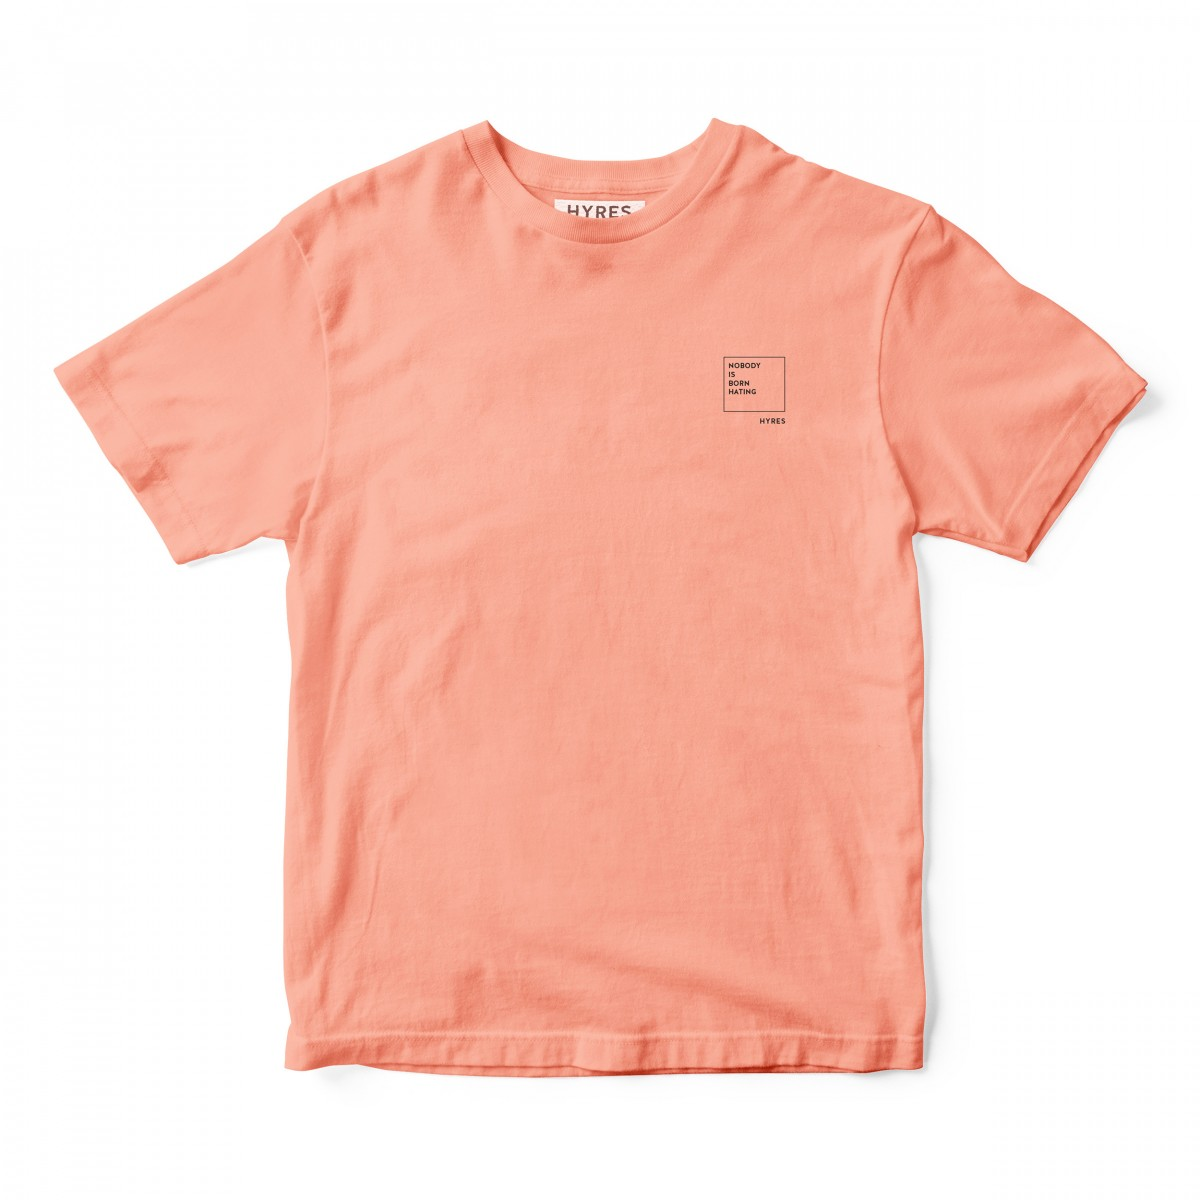 HYRES Unisex T-Shirt No Hate rose clay